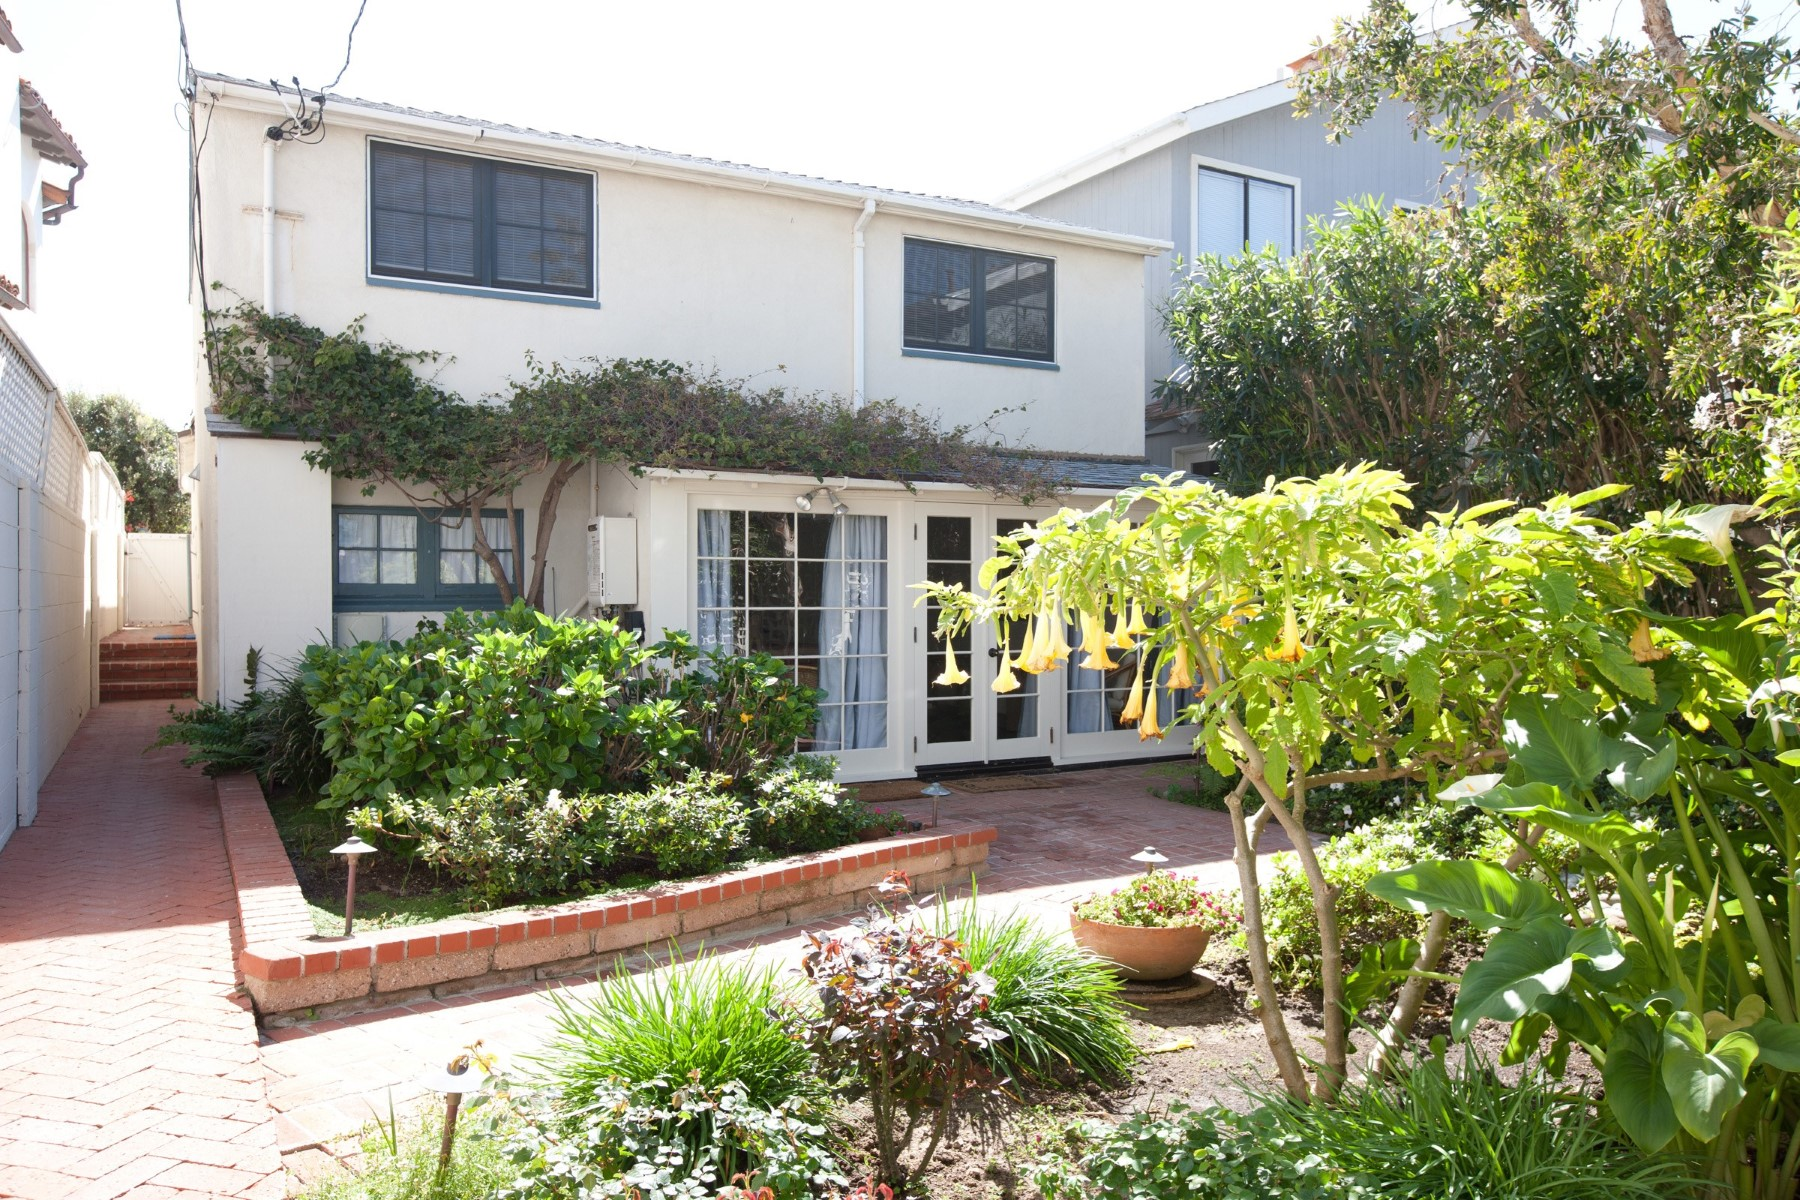 Single Family Home for Rent at Malibu Colony Cottage 23664 Malibu Colony Road Malibu, California 90265 United States